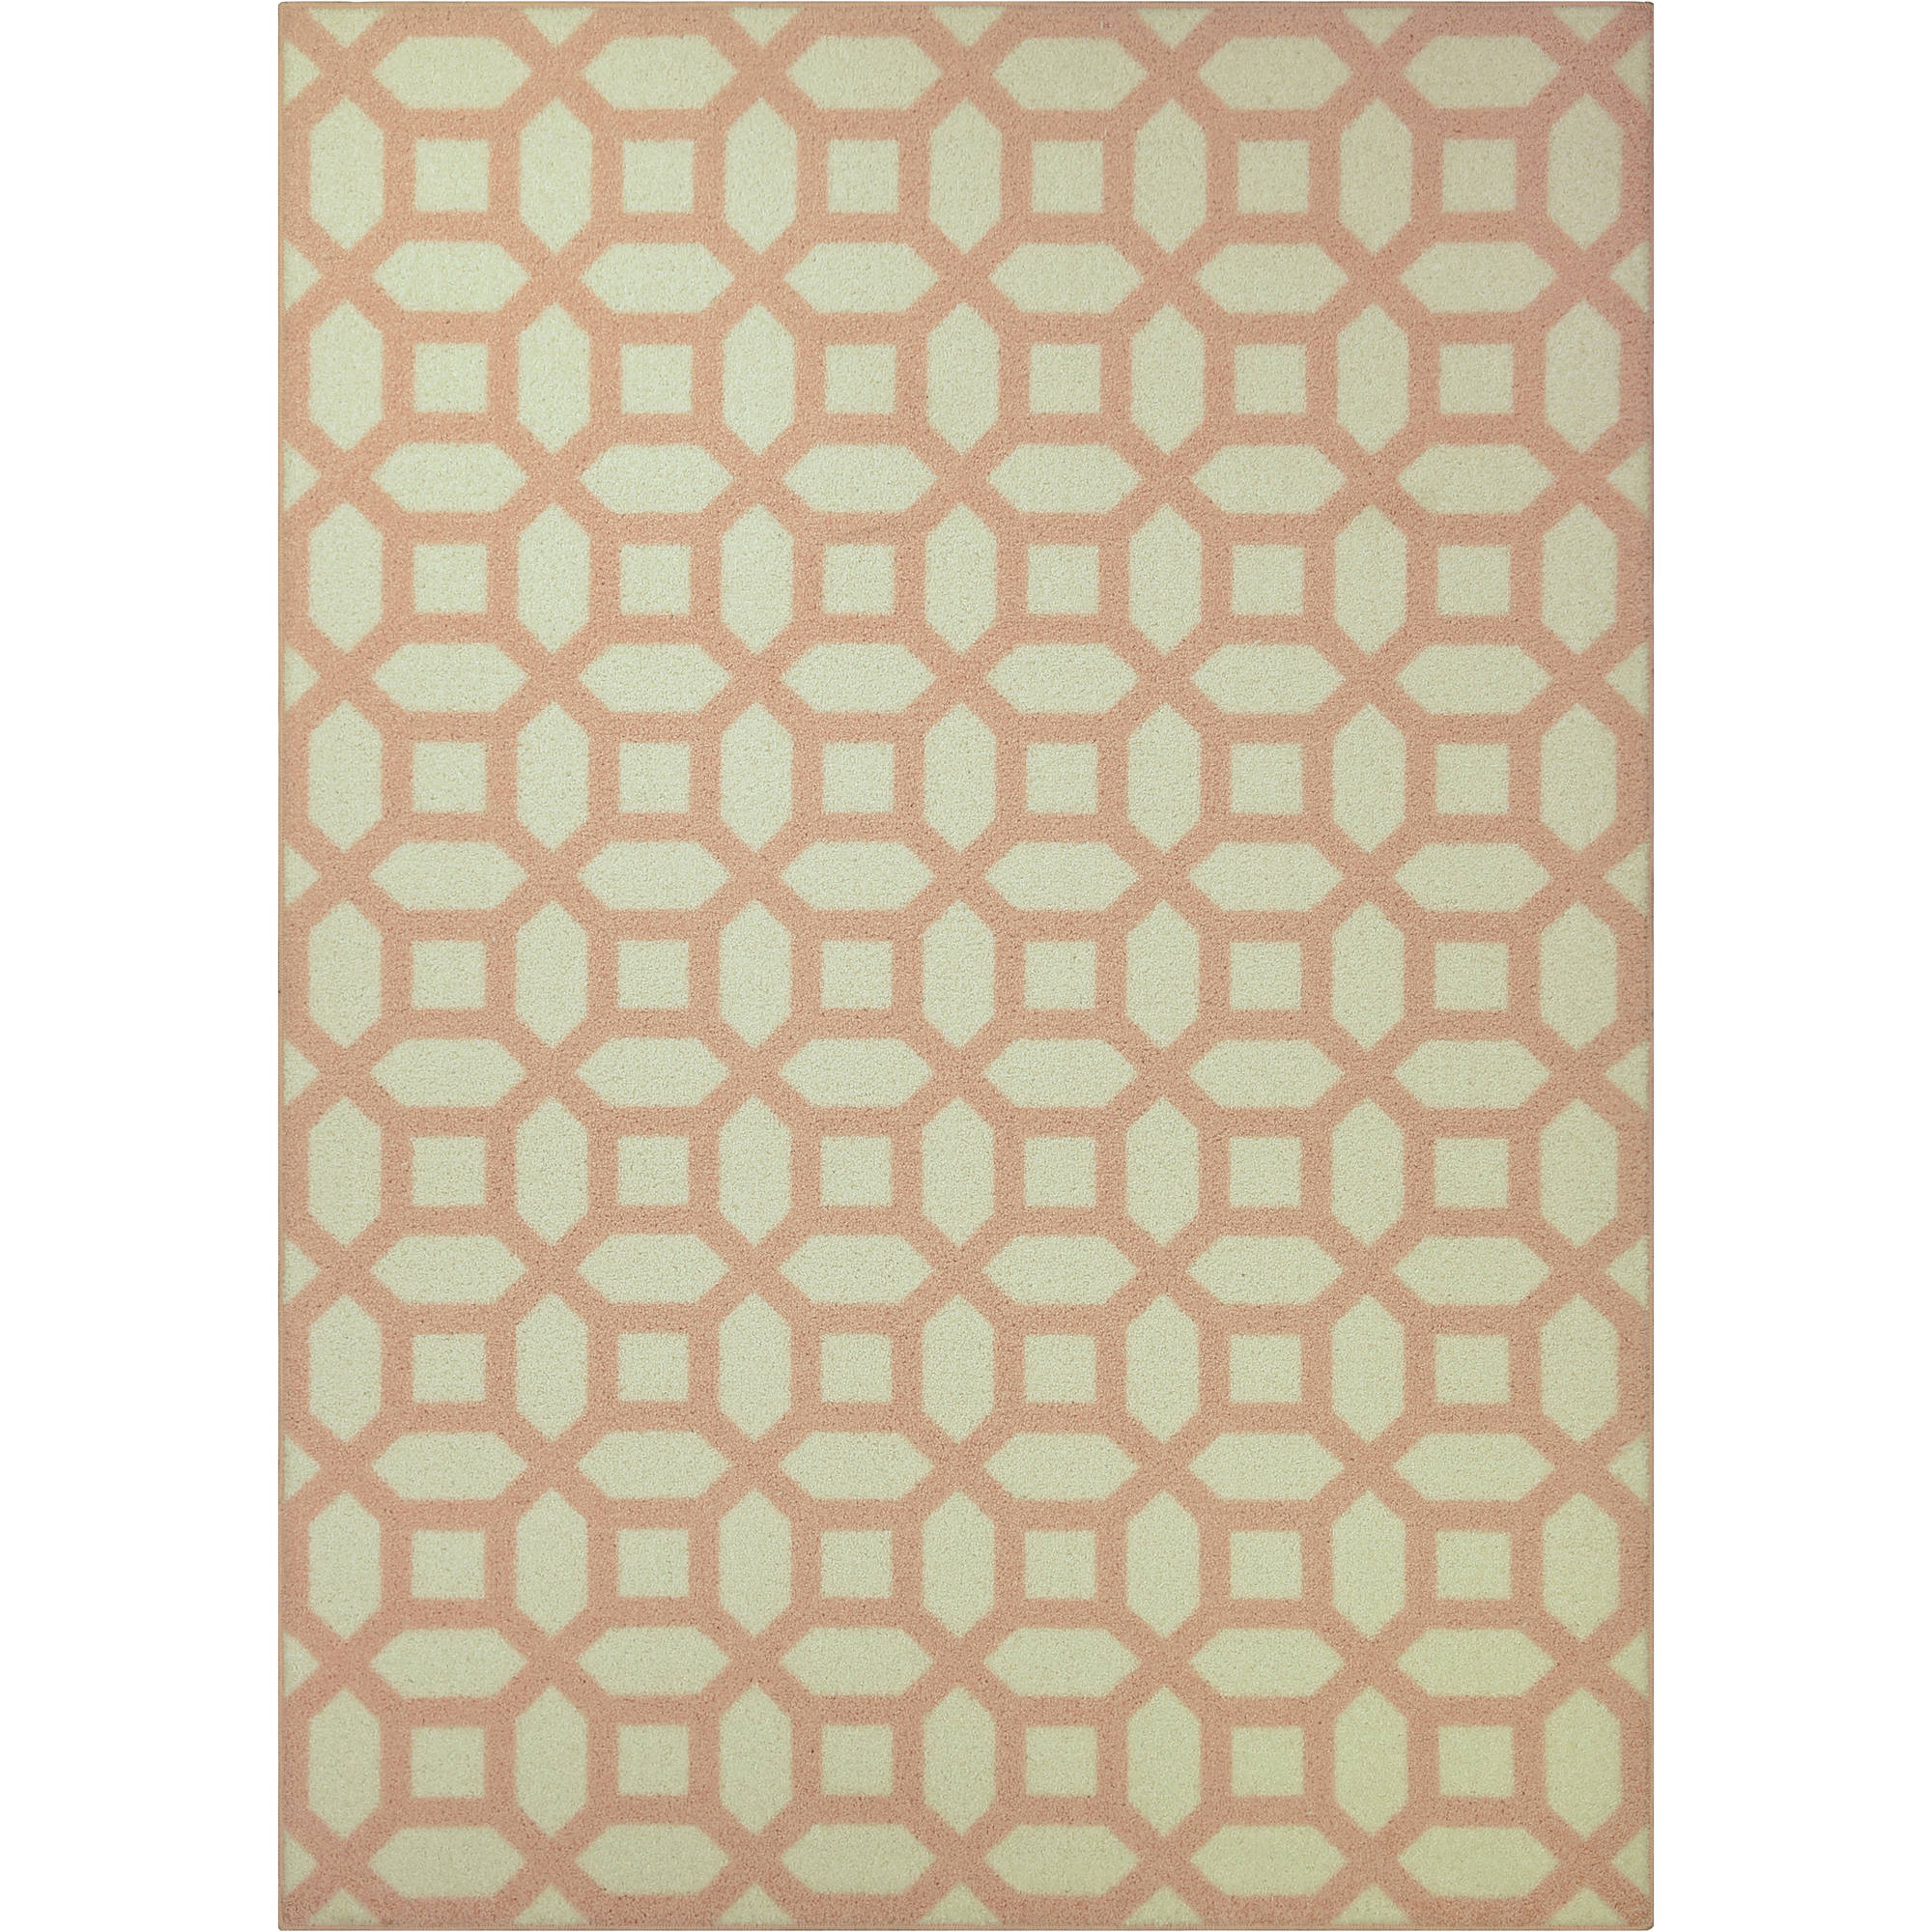 Mainstays Kids Geometric Print Area Rug